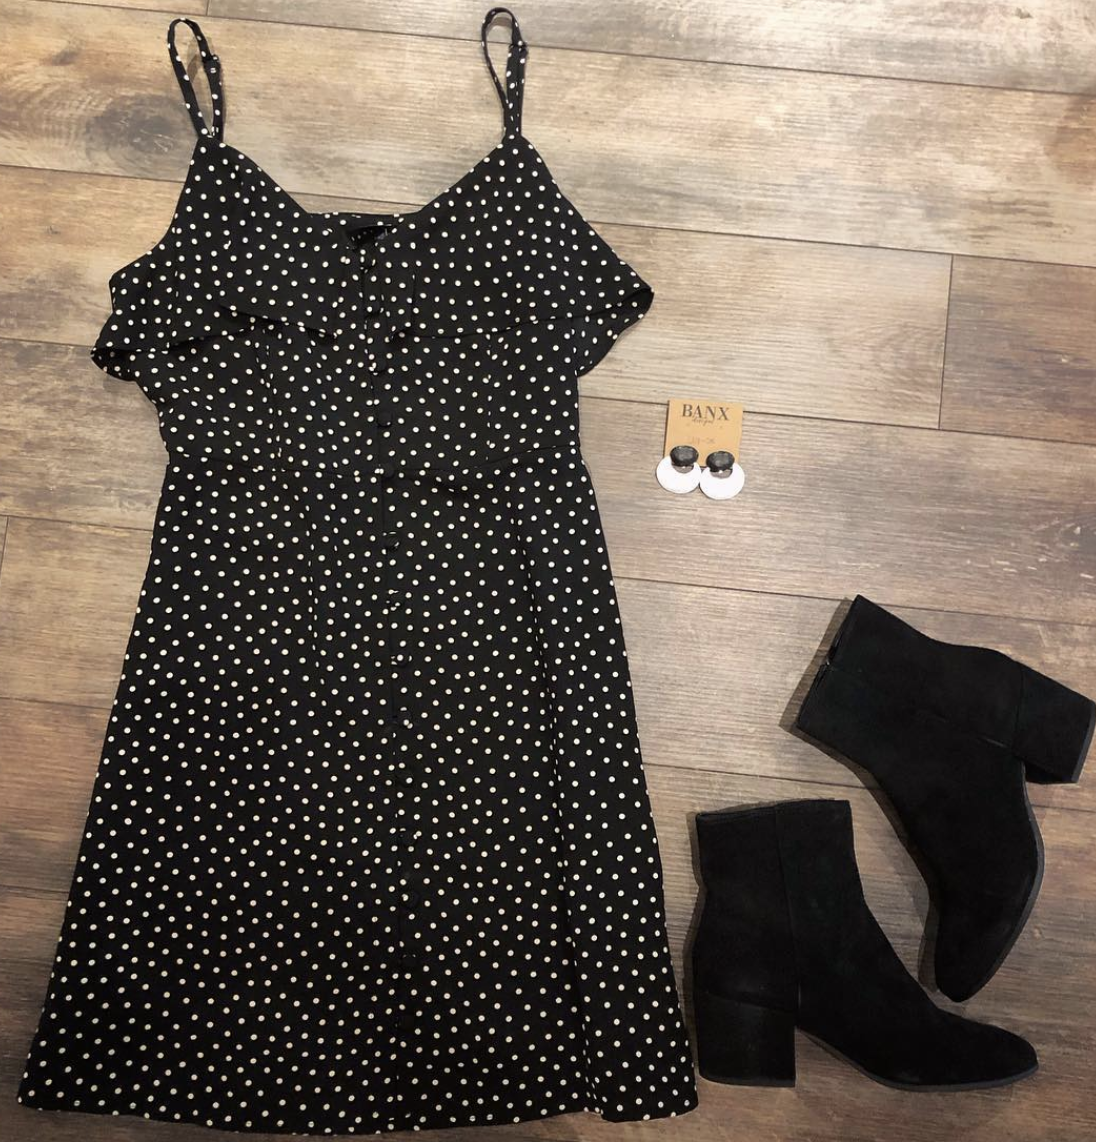 Sanctuary Clothing Polka Dot Dress